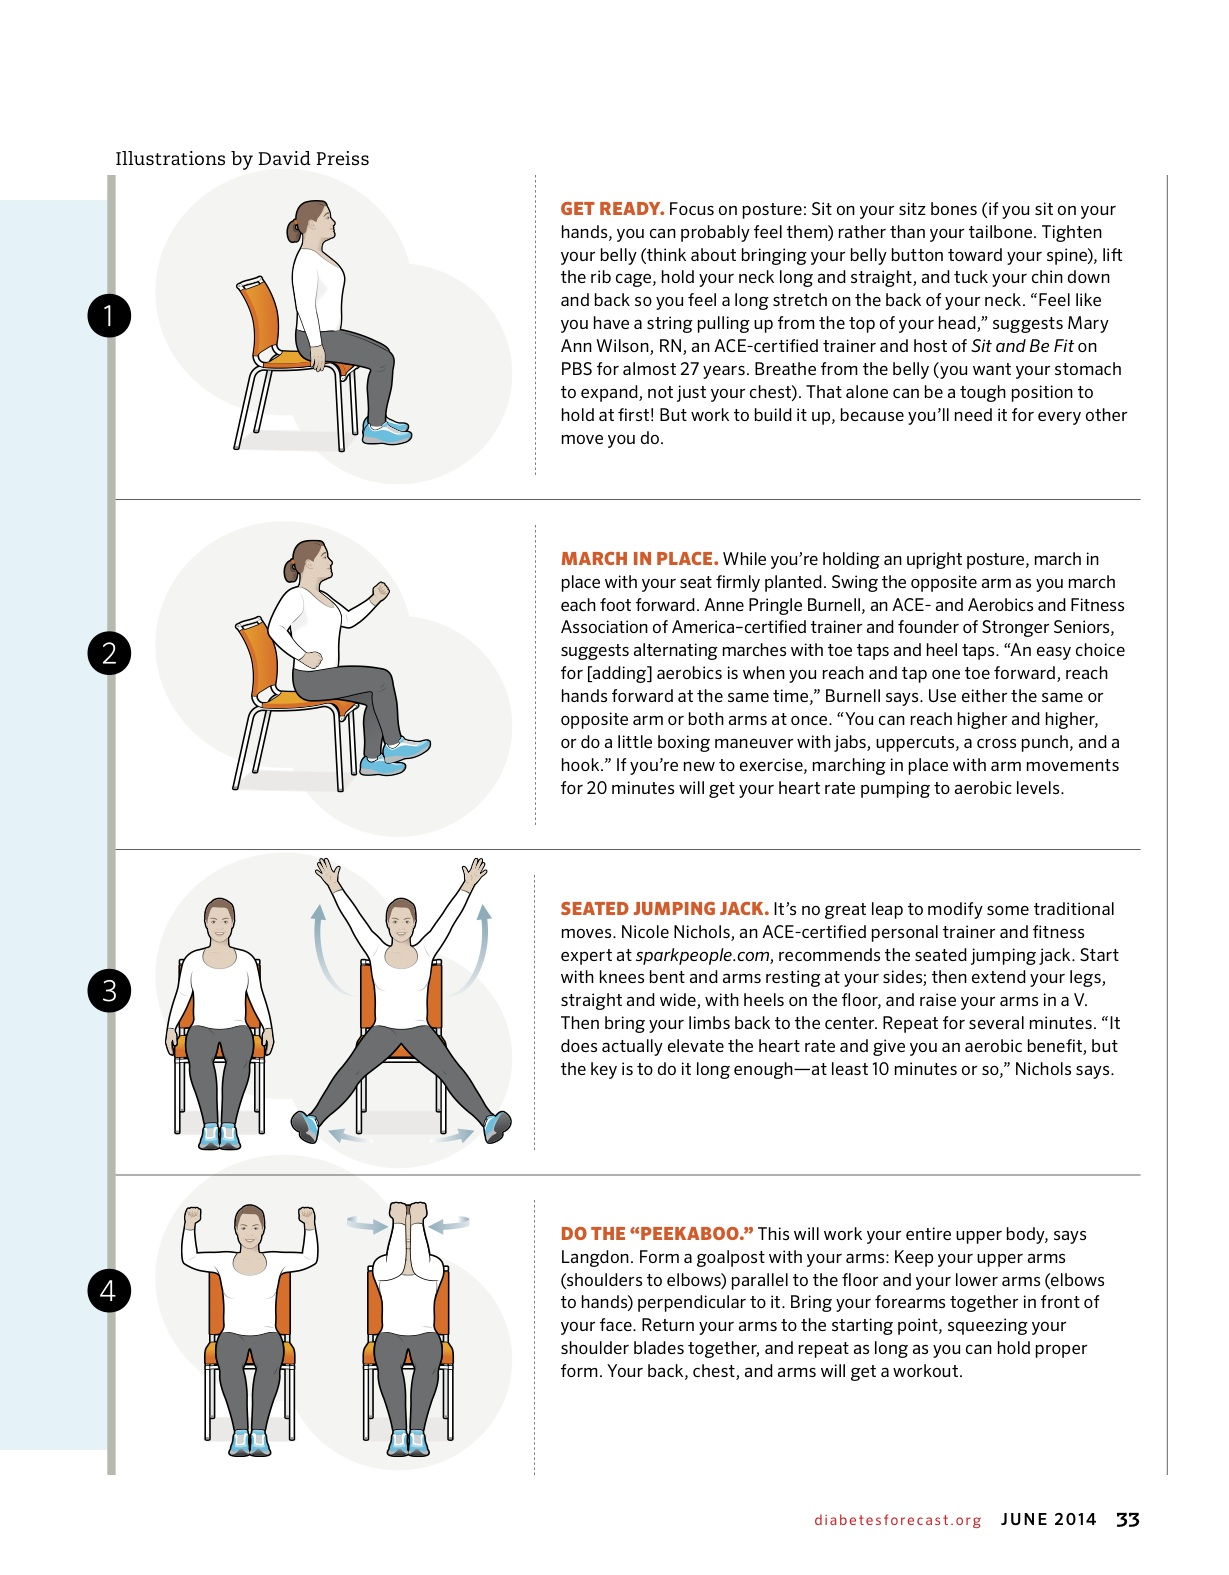 sitting down chair exercises gray accent don 39t sugarcoat diabetes  a program to prevent type ii